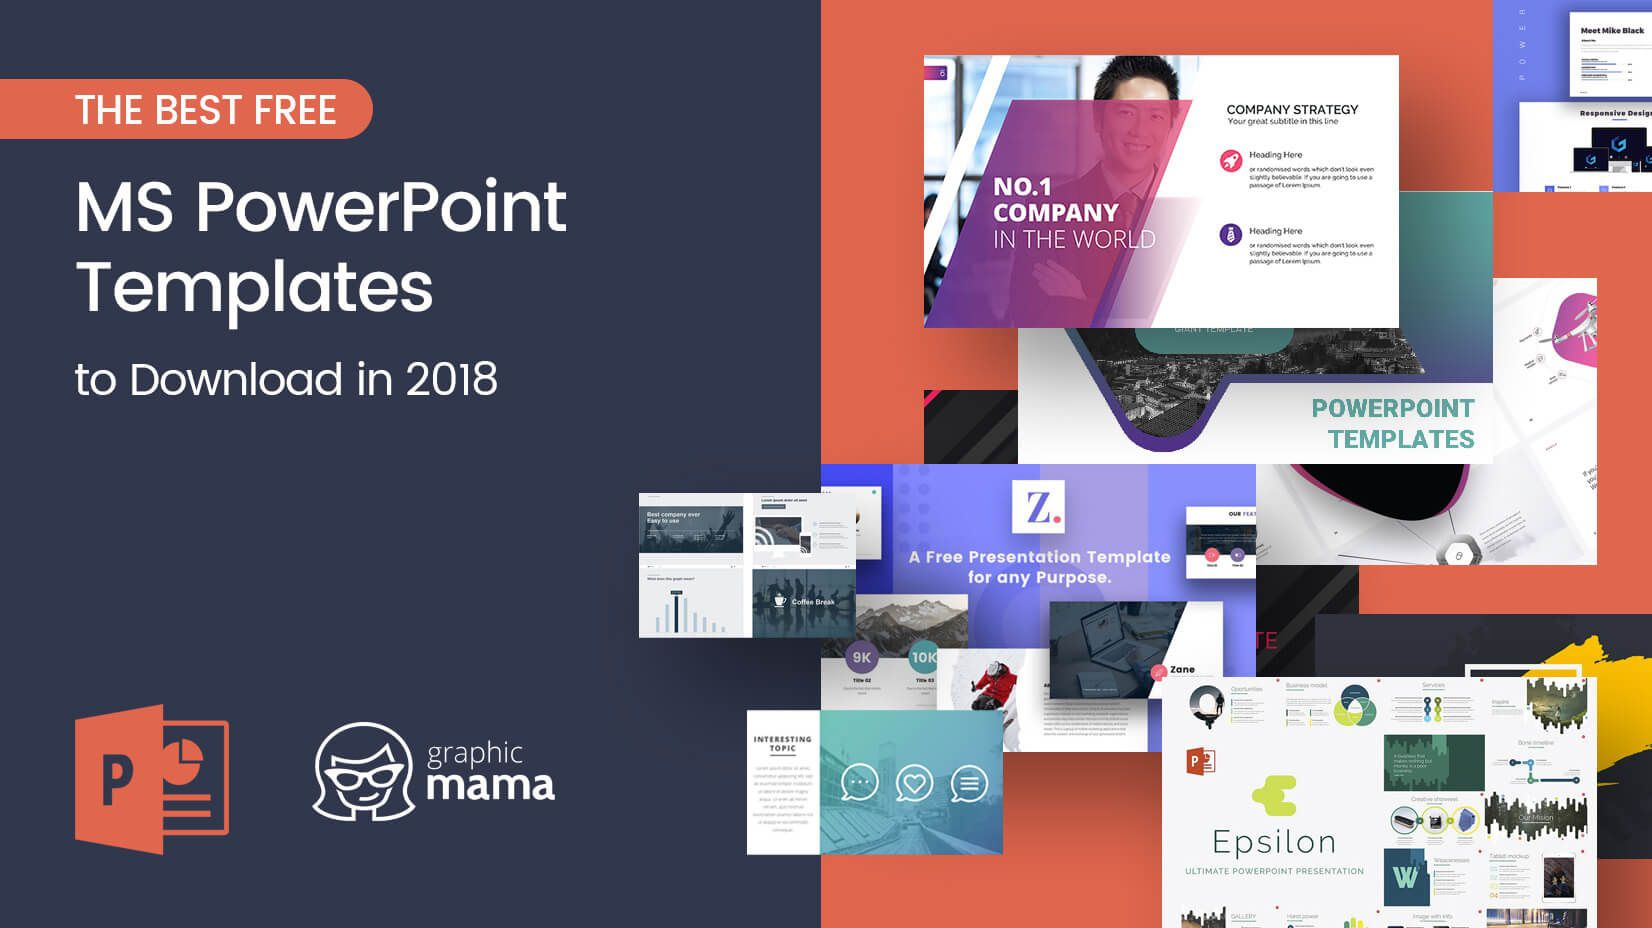 008 Surprising Free Download Powerpoint Template Design  Templates Medical Theme Presentation 2018Full